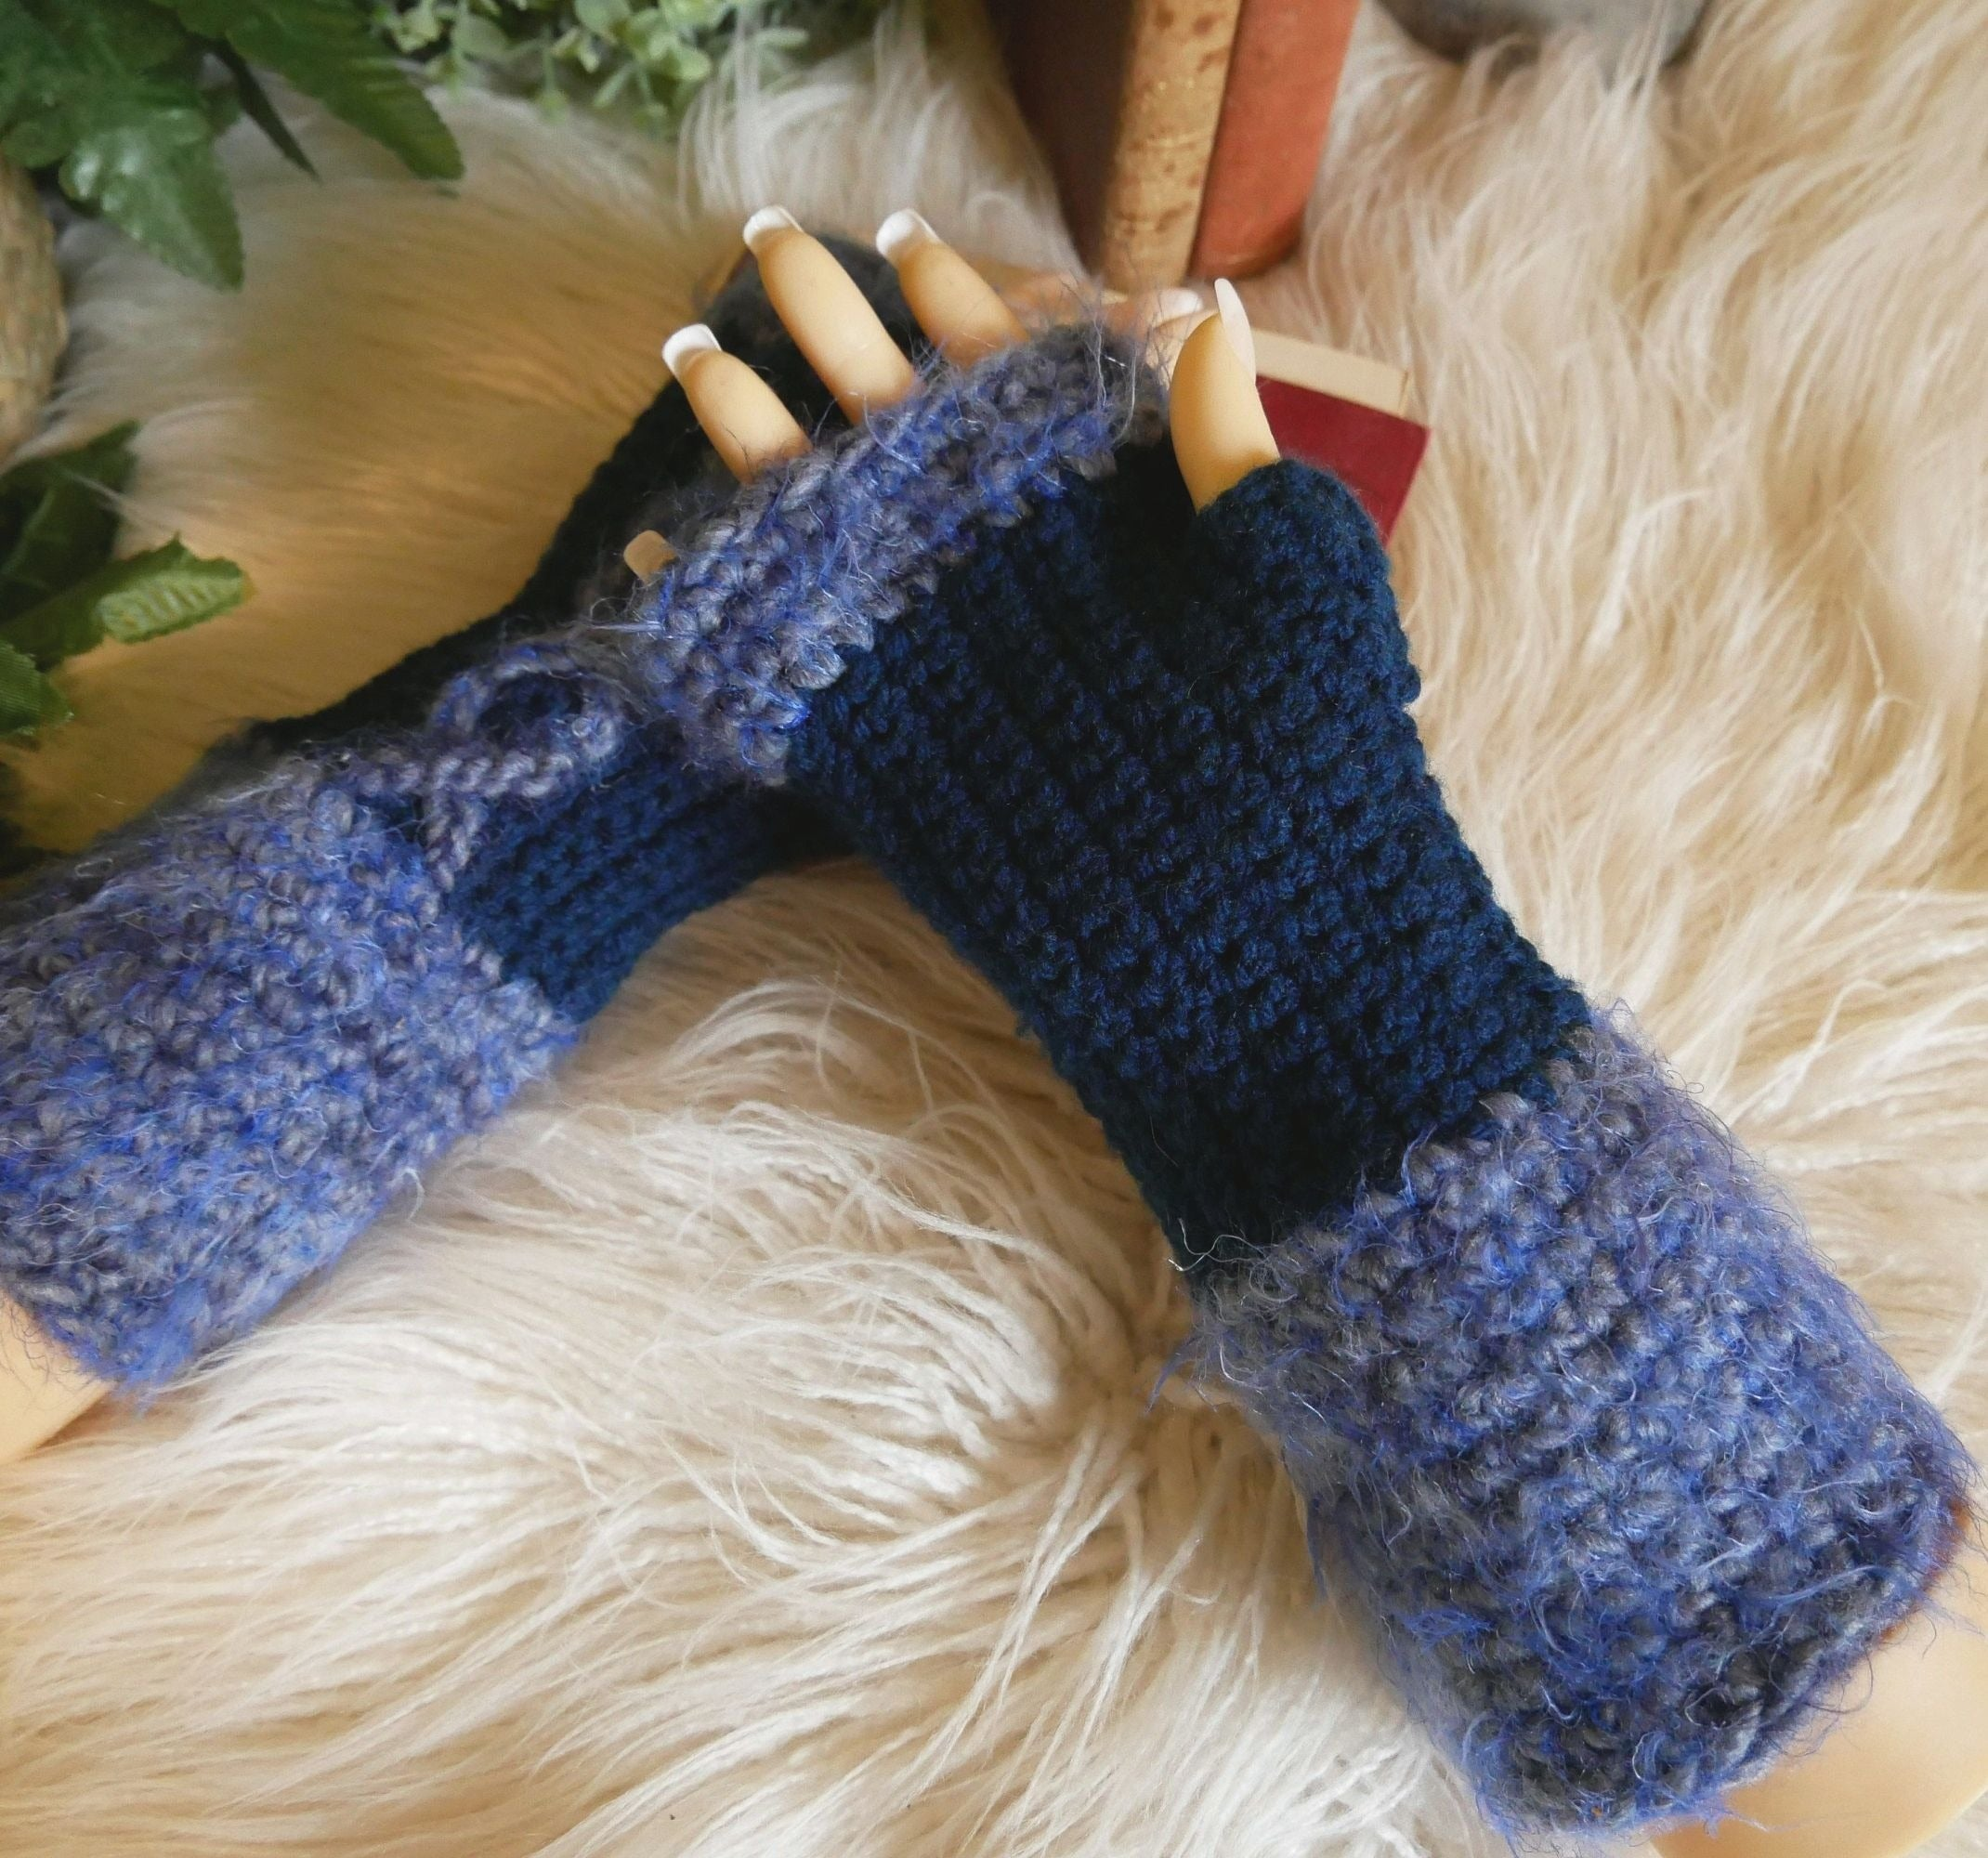 Think-Blue-Fingerless-Gloves-Nchanted-Gifts